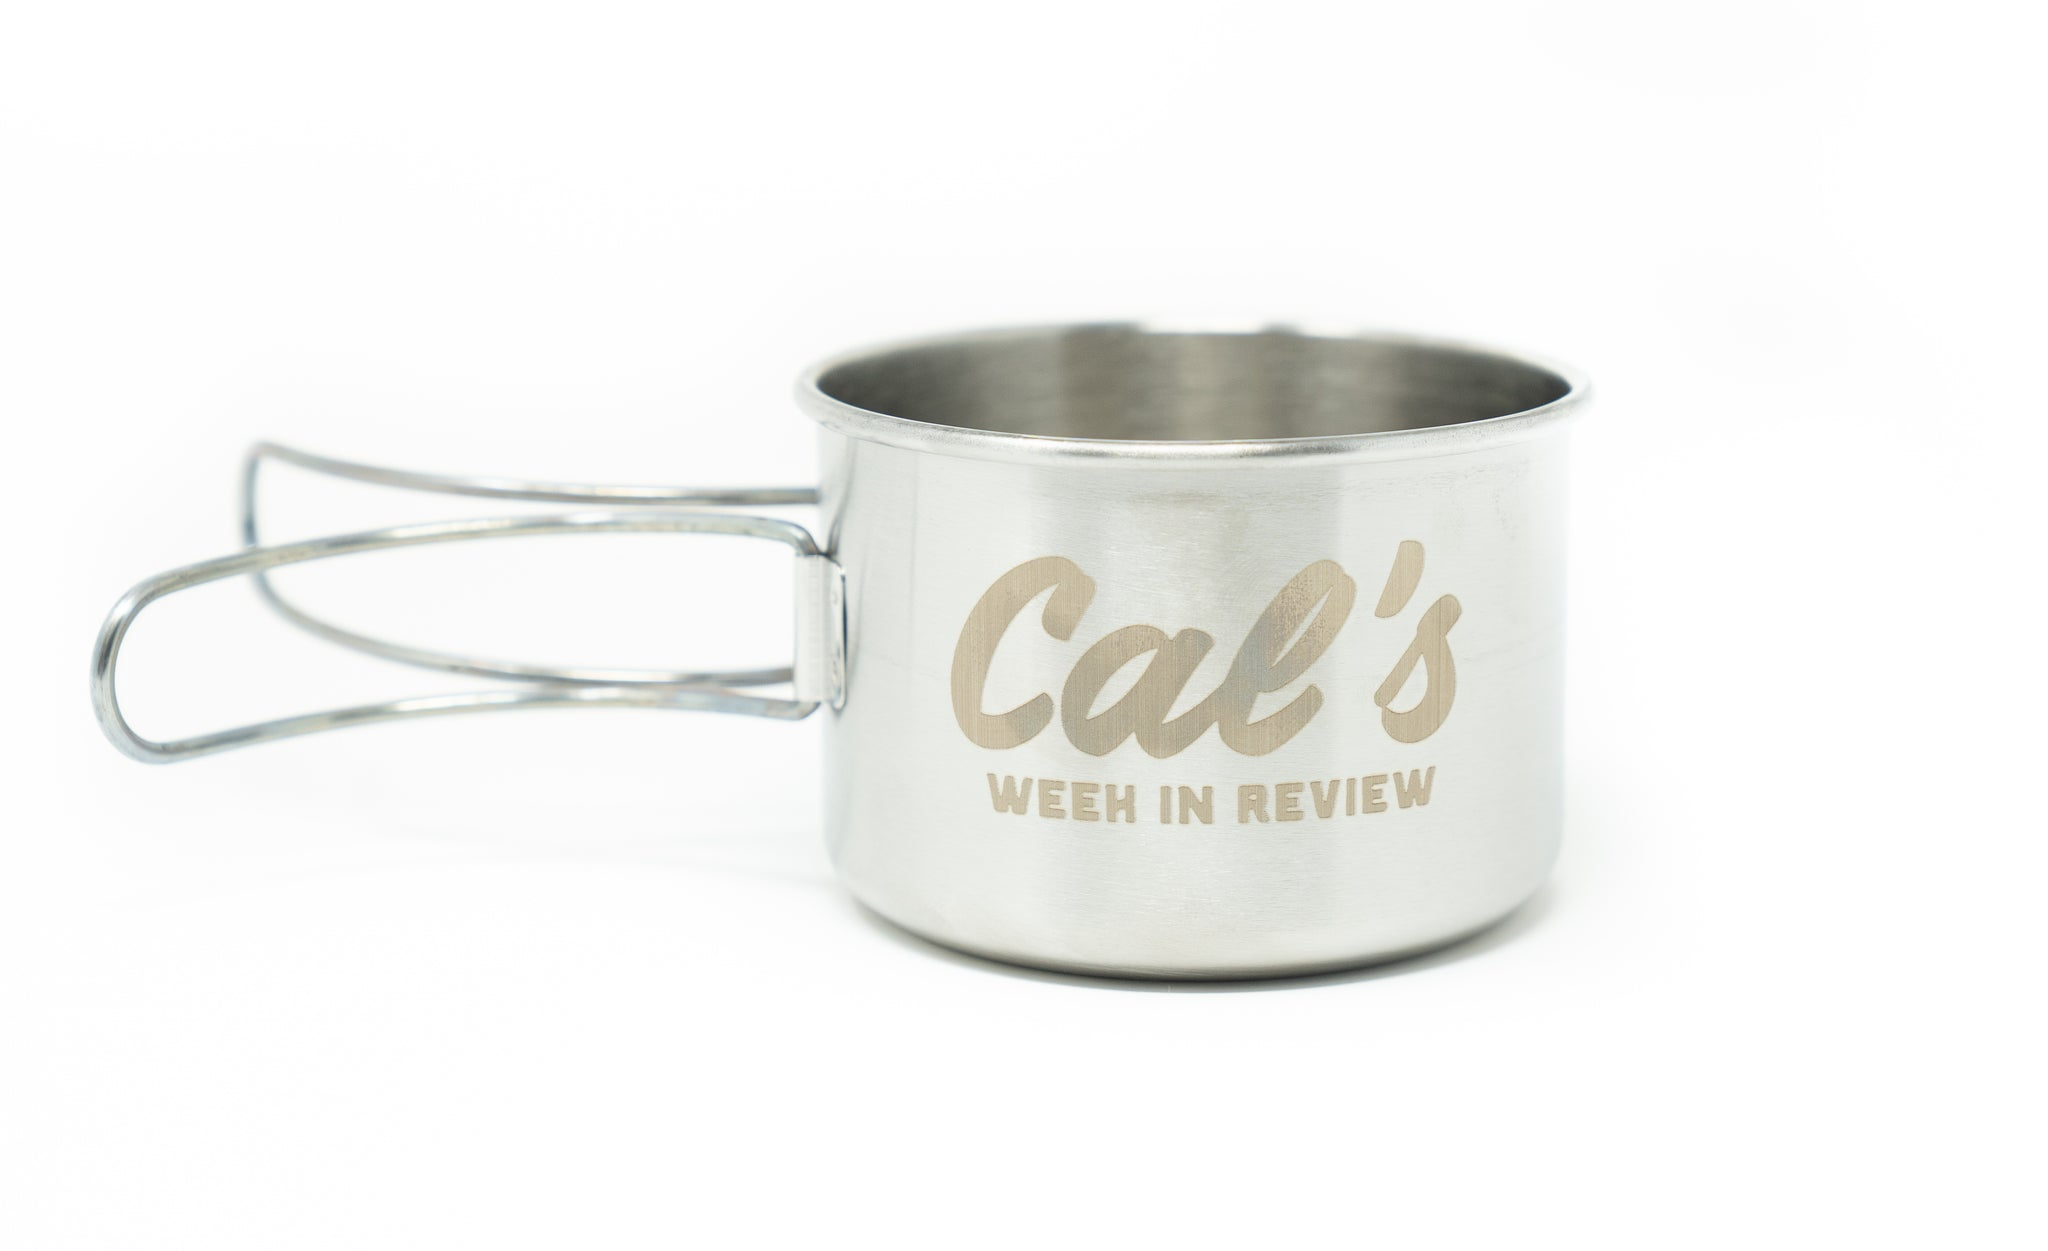 Cal's Camp Cup